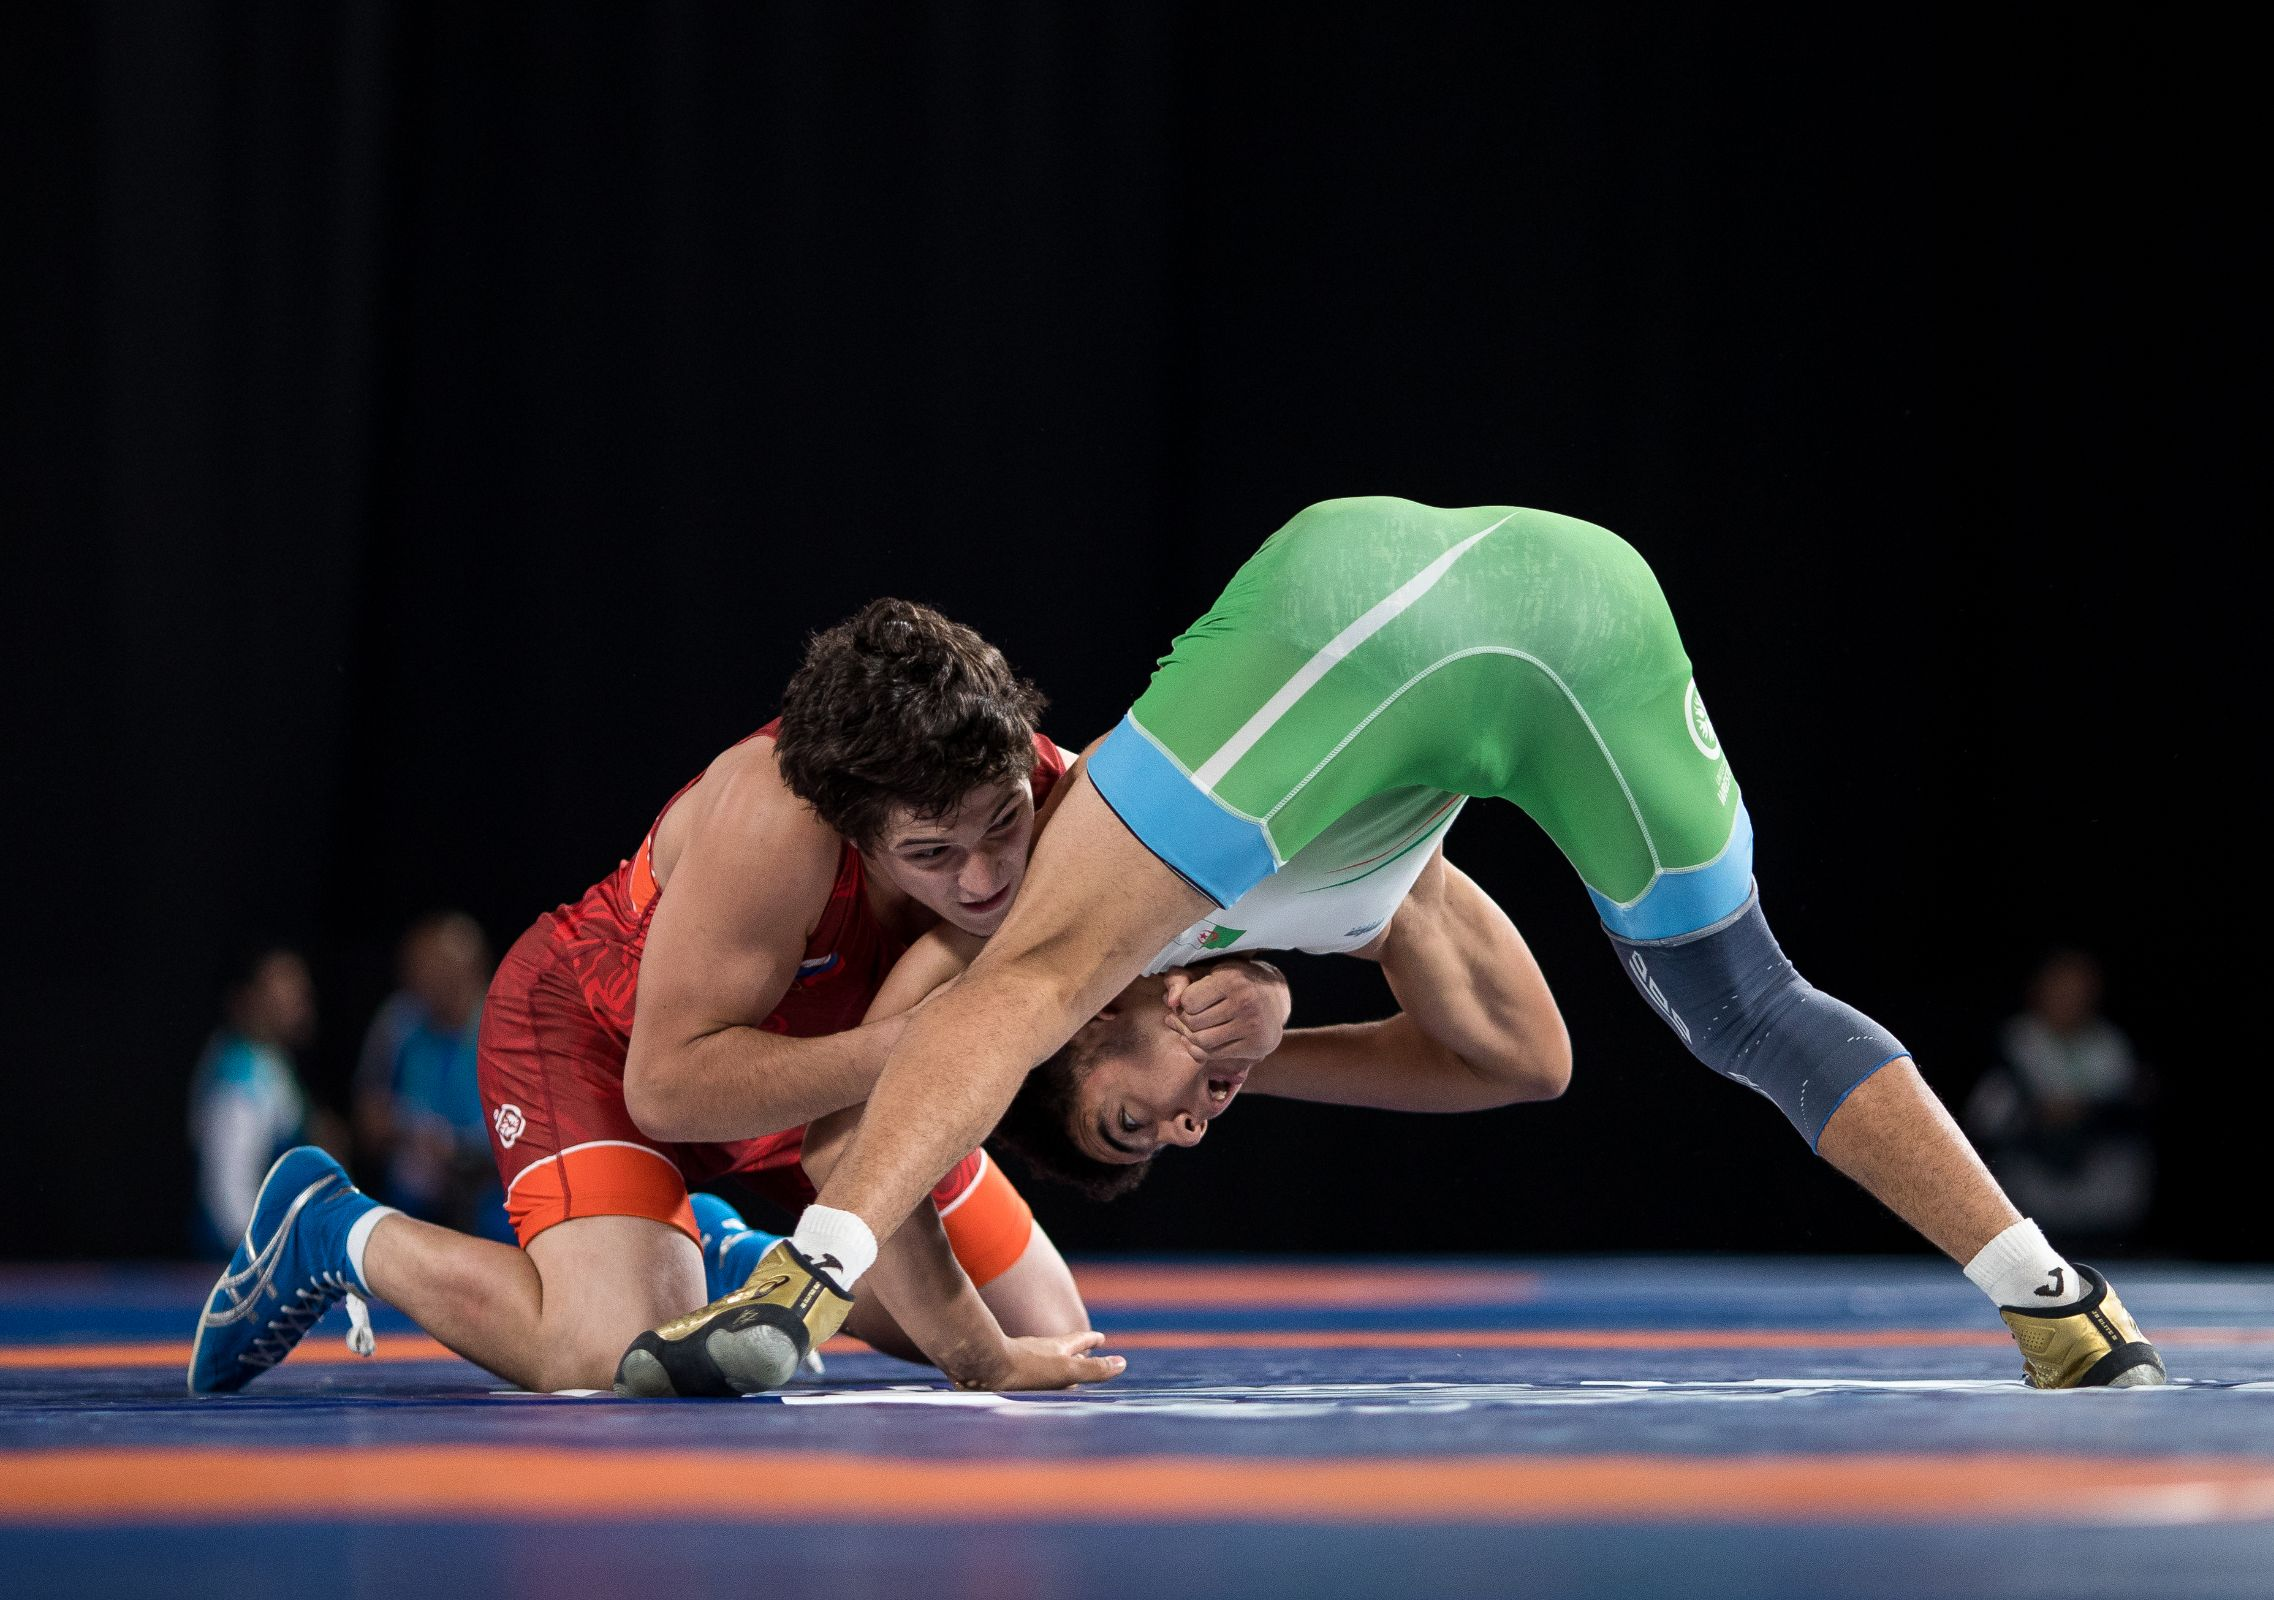 Buenos Aires 2018 - Wrestling Freestyle - Men's 80kg